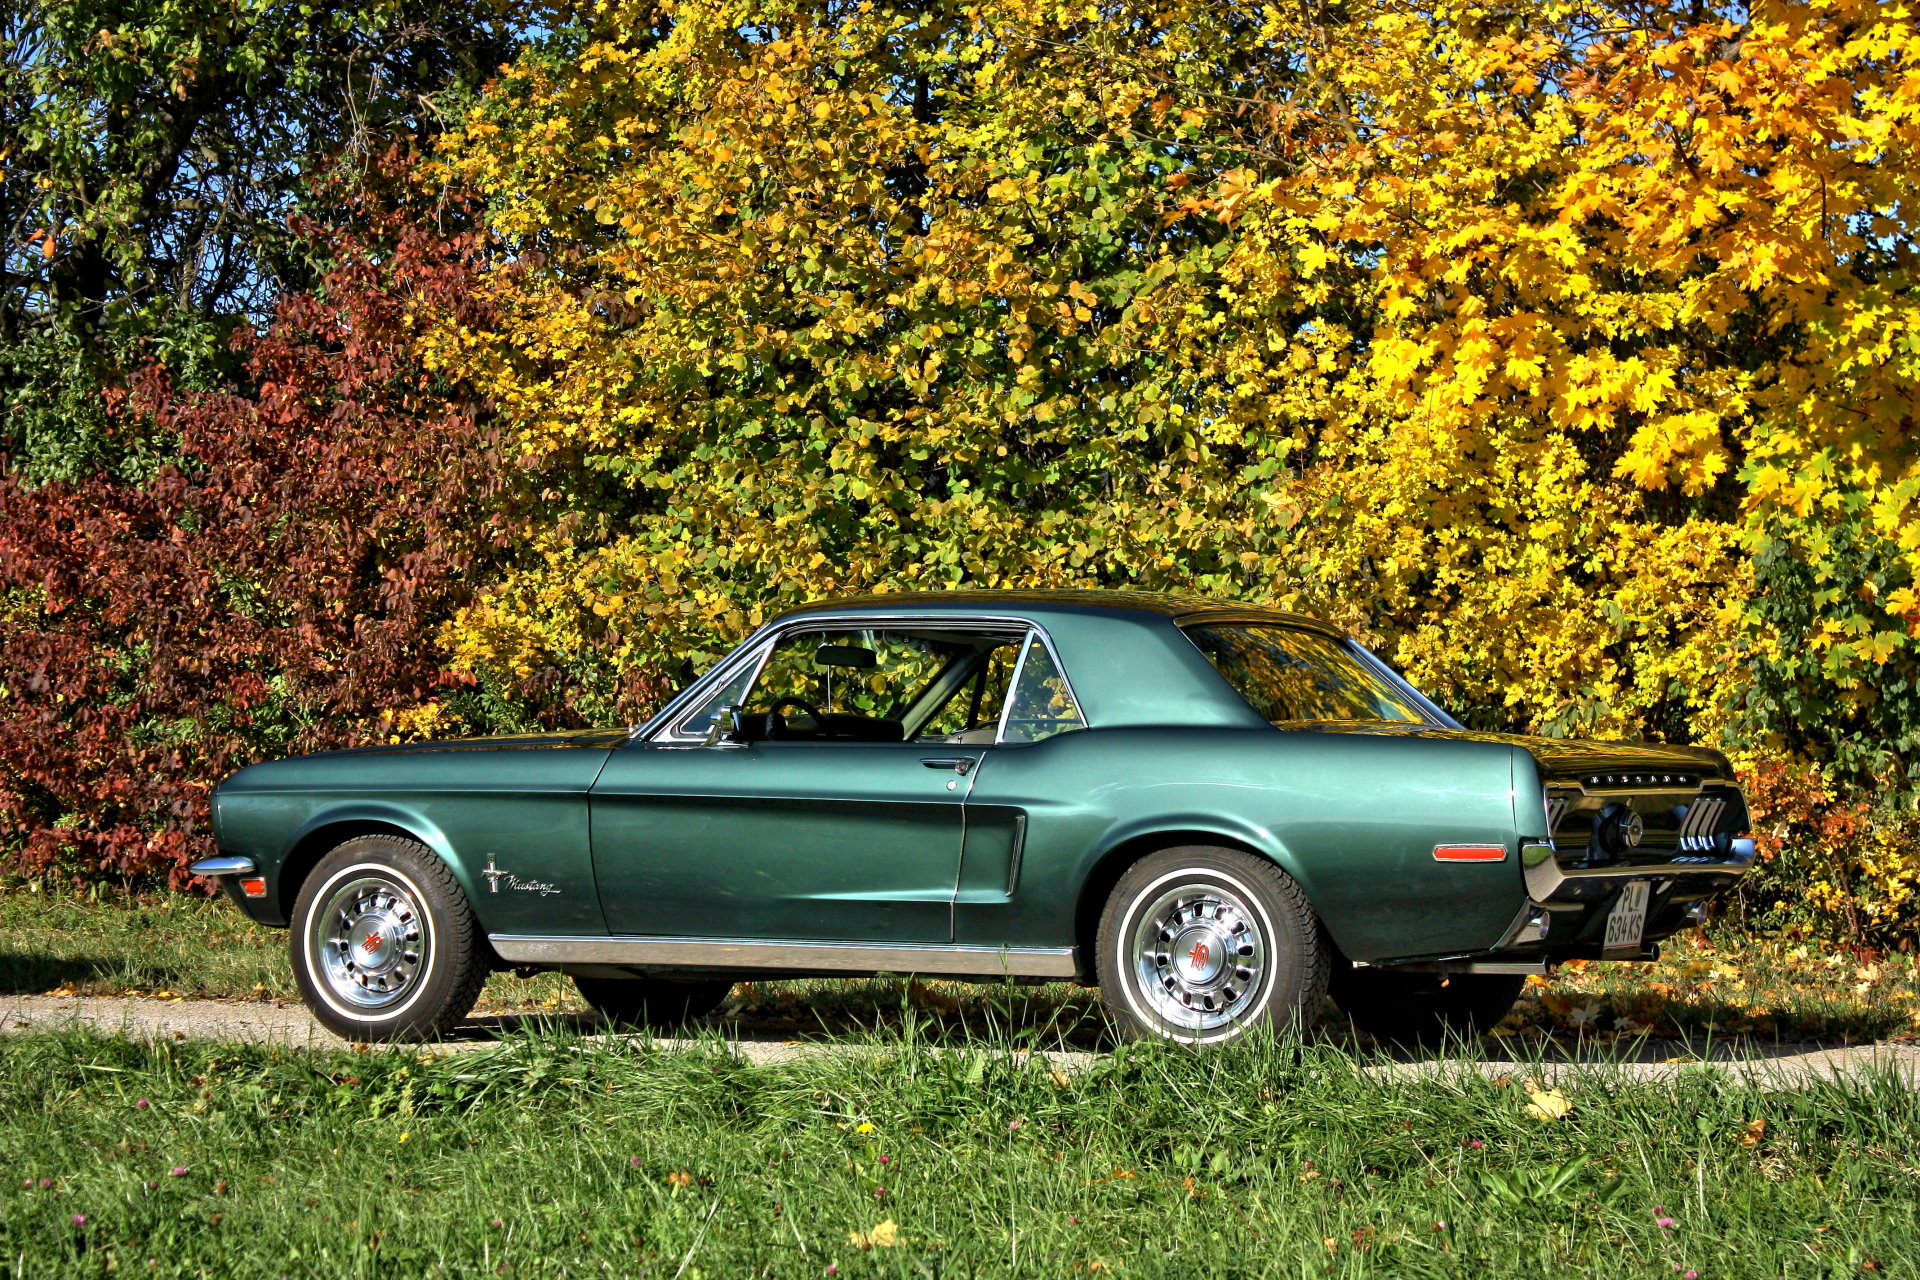 ford mustang bj.68 oldtimer als brautauto